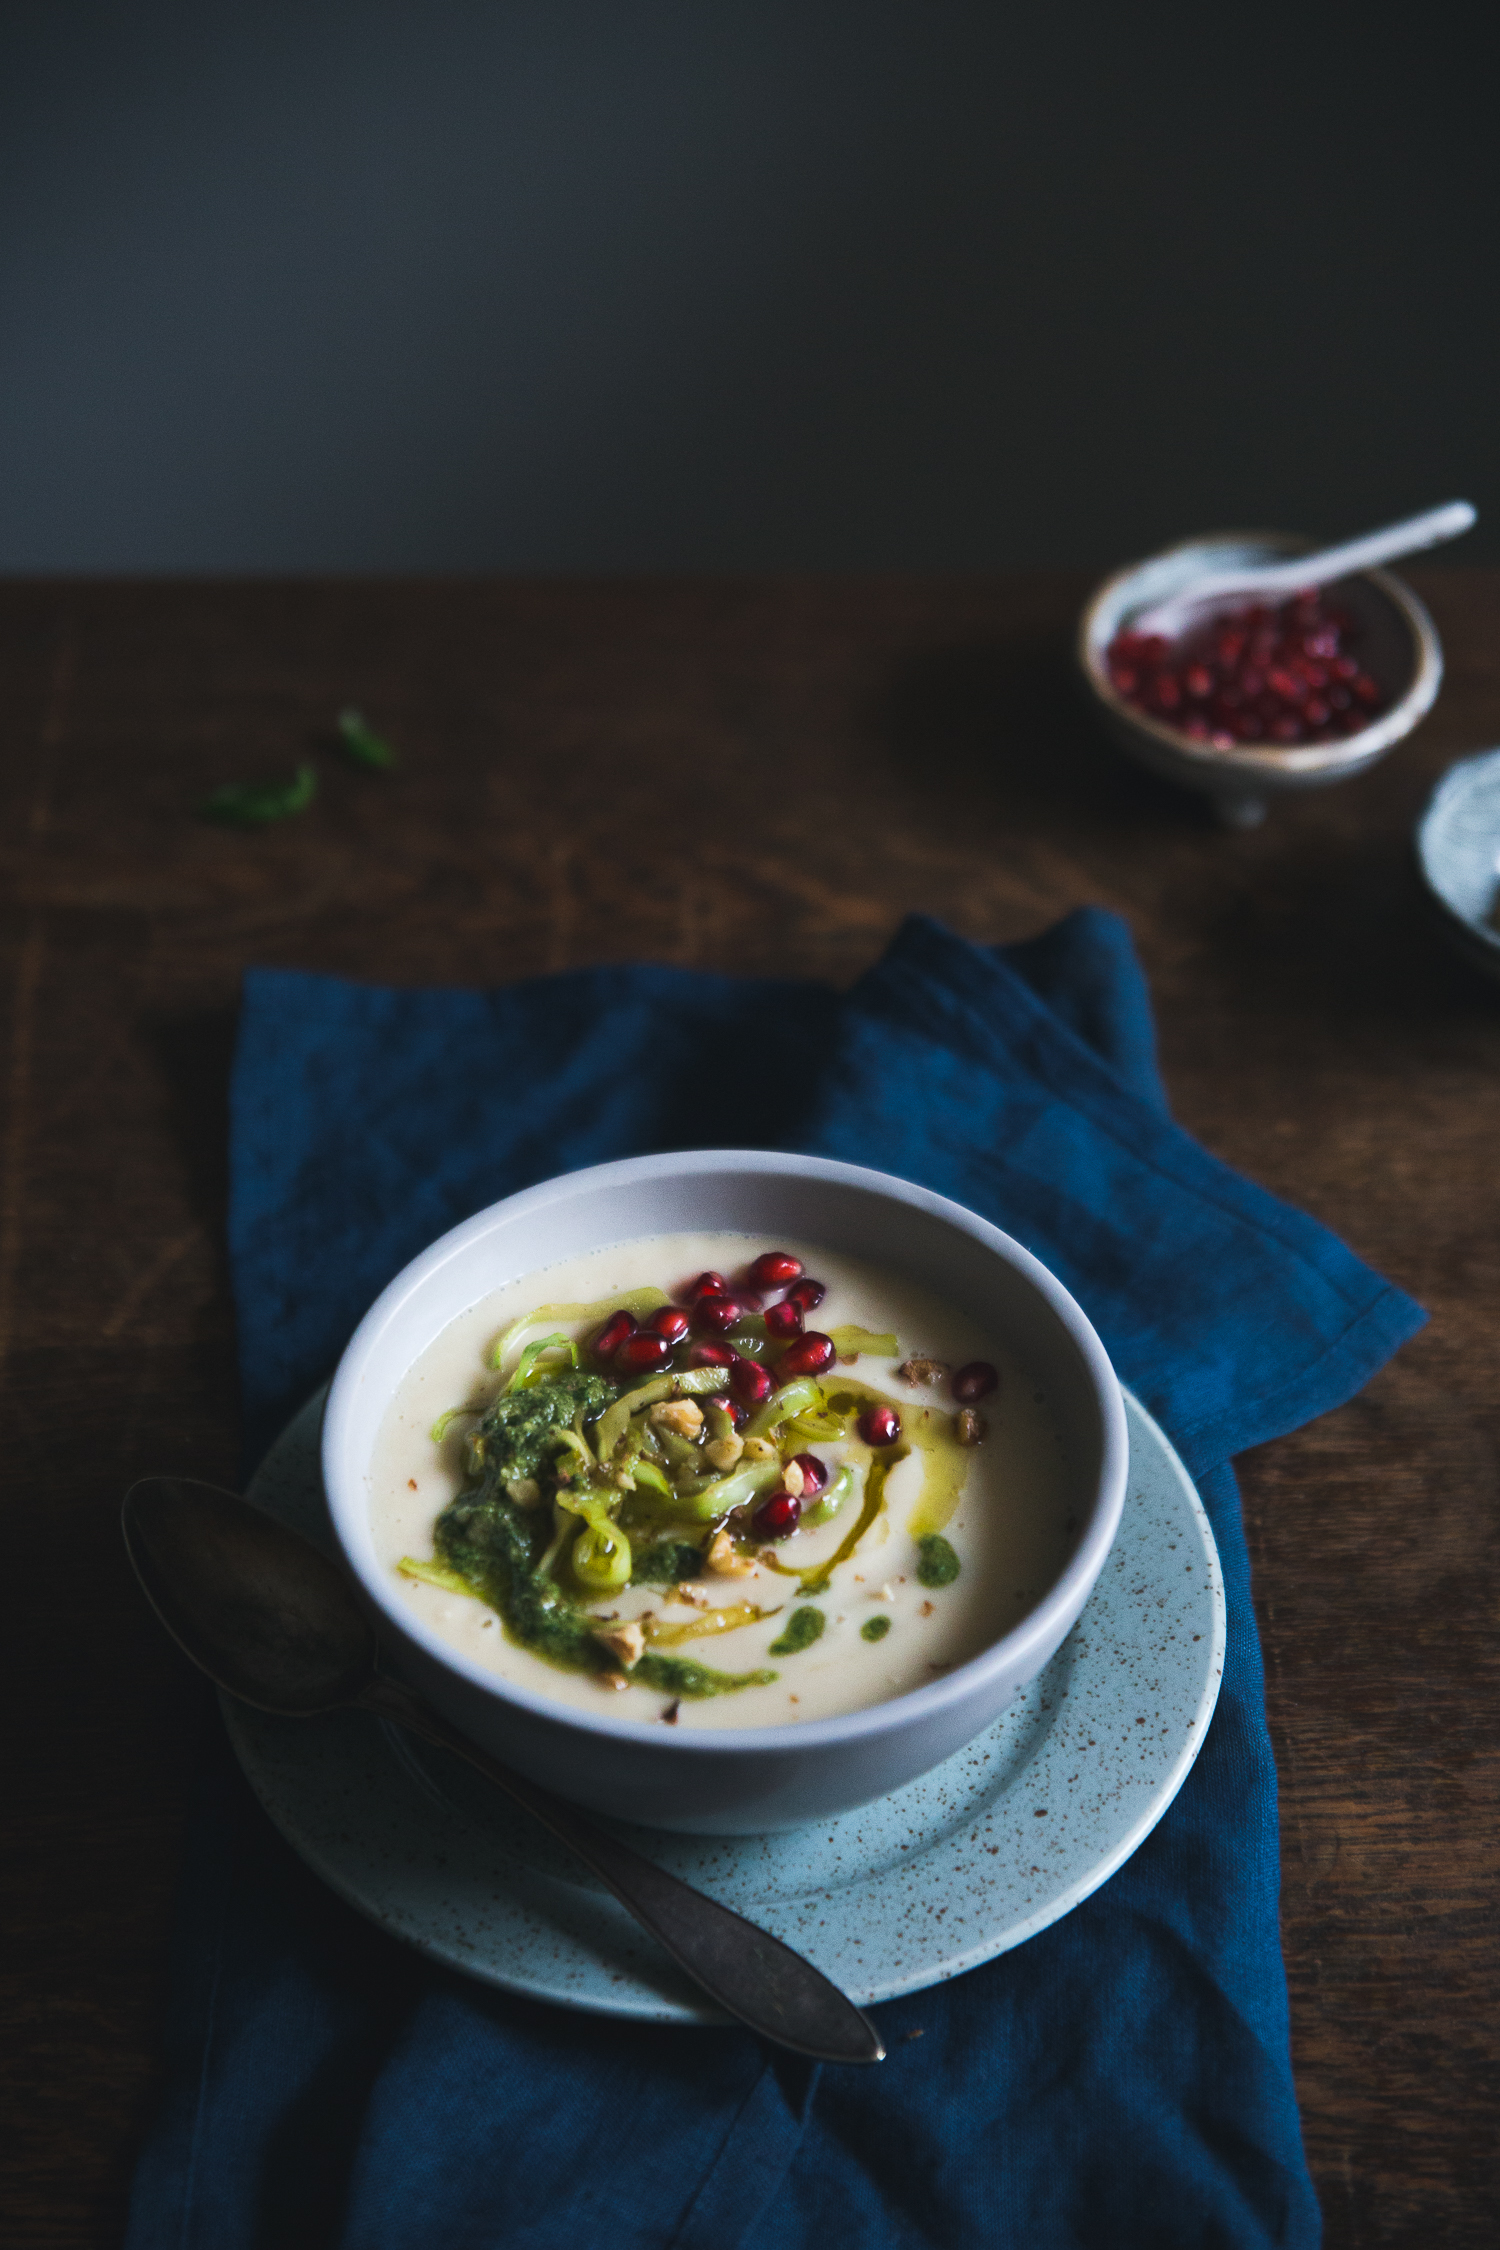 ... ROASTED PARSNIP & BUTTER BEAN SOUP WITH WALNUT PESTO & CARAMELIZED